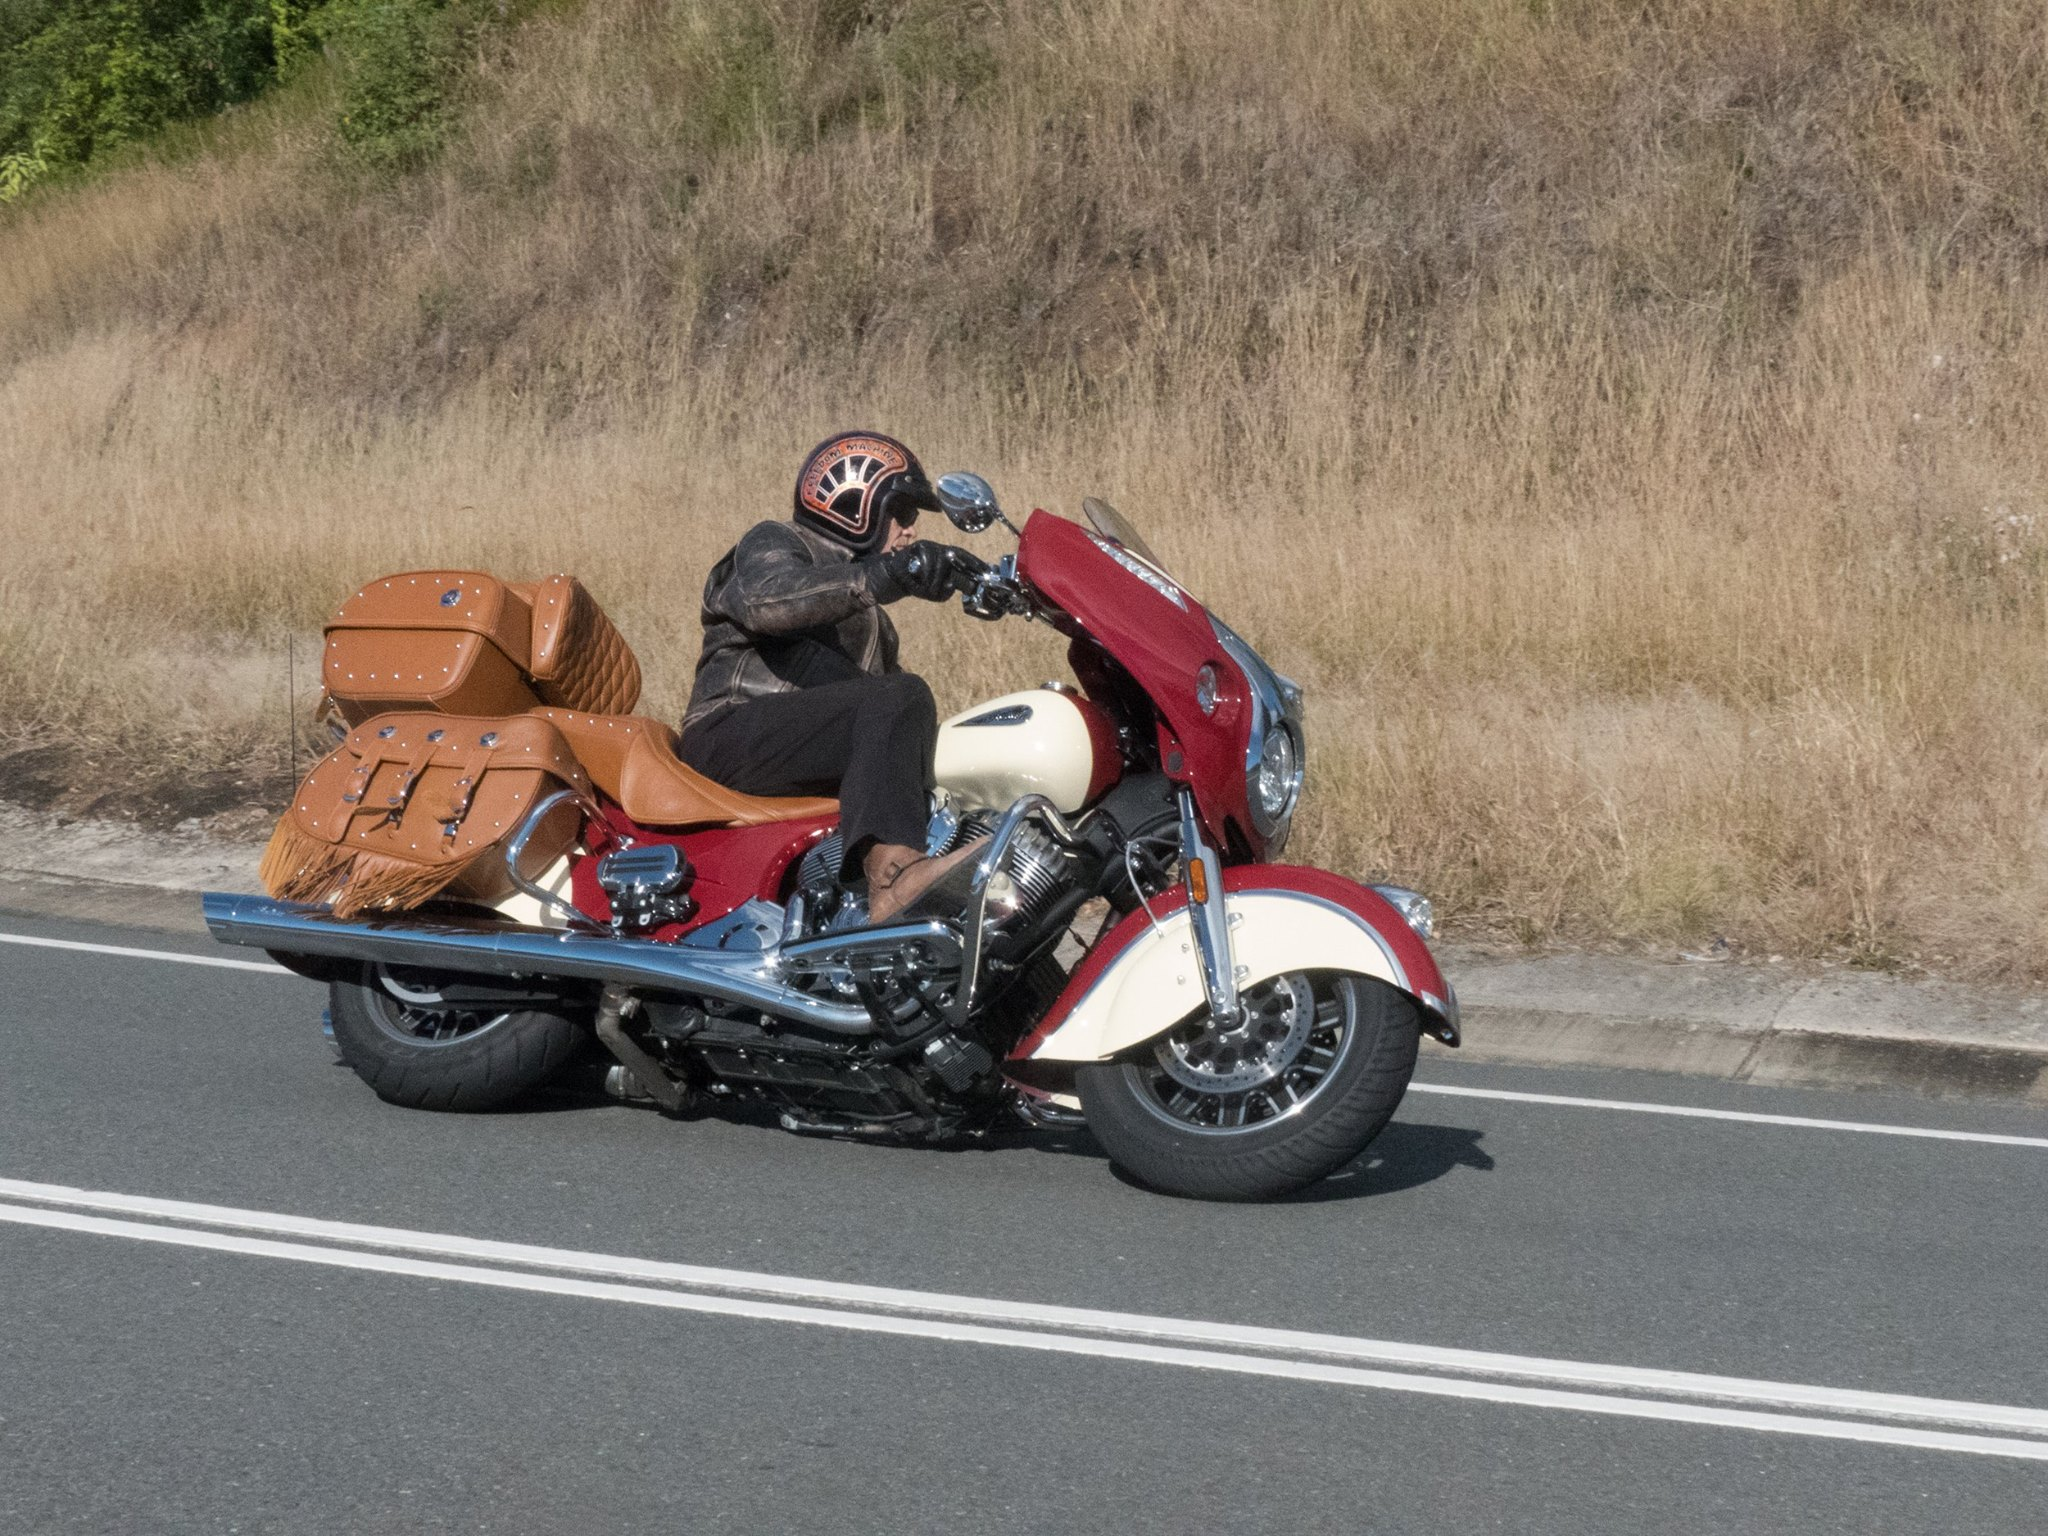 Indian Roadmaster Classic on the Oxley highway wiring issue